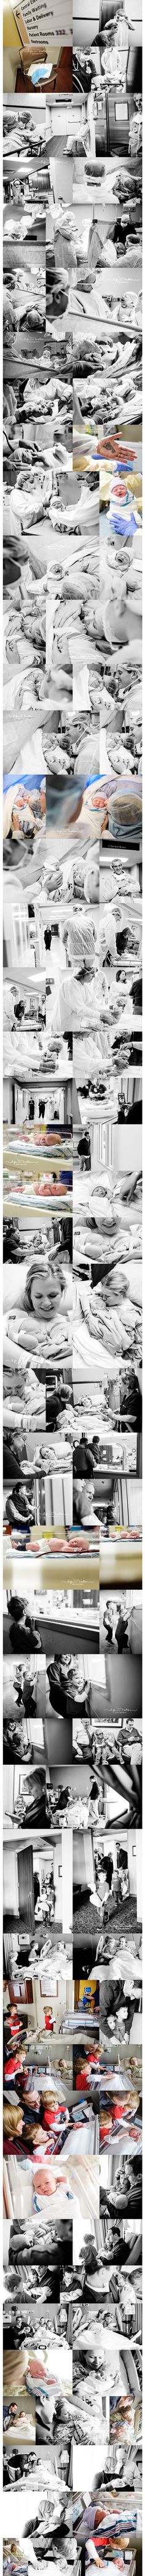 C-Section Birth Photography by Lyndsay Stradtner Love love love footprint on the hand! Birth Pictures, Hospital Pictures, Birth Photos, Newborn Pictures, Maternity Pictures, Pregnancy Photos, Labor Photos, Birth Photography, Maternity Photography